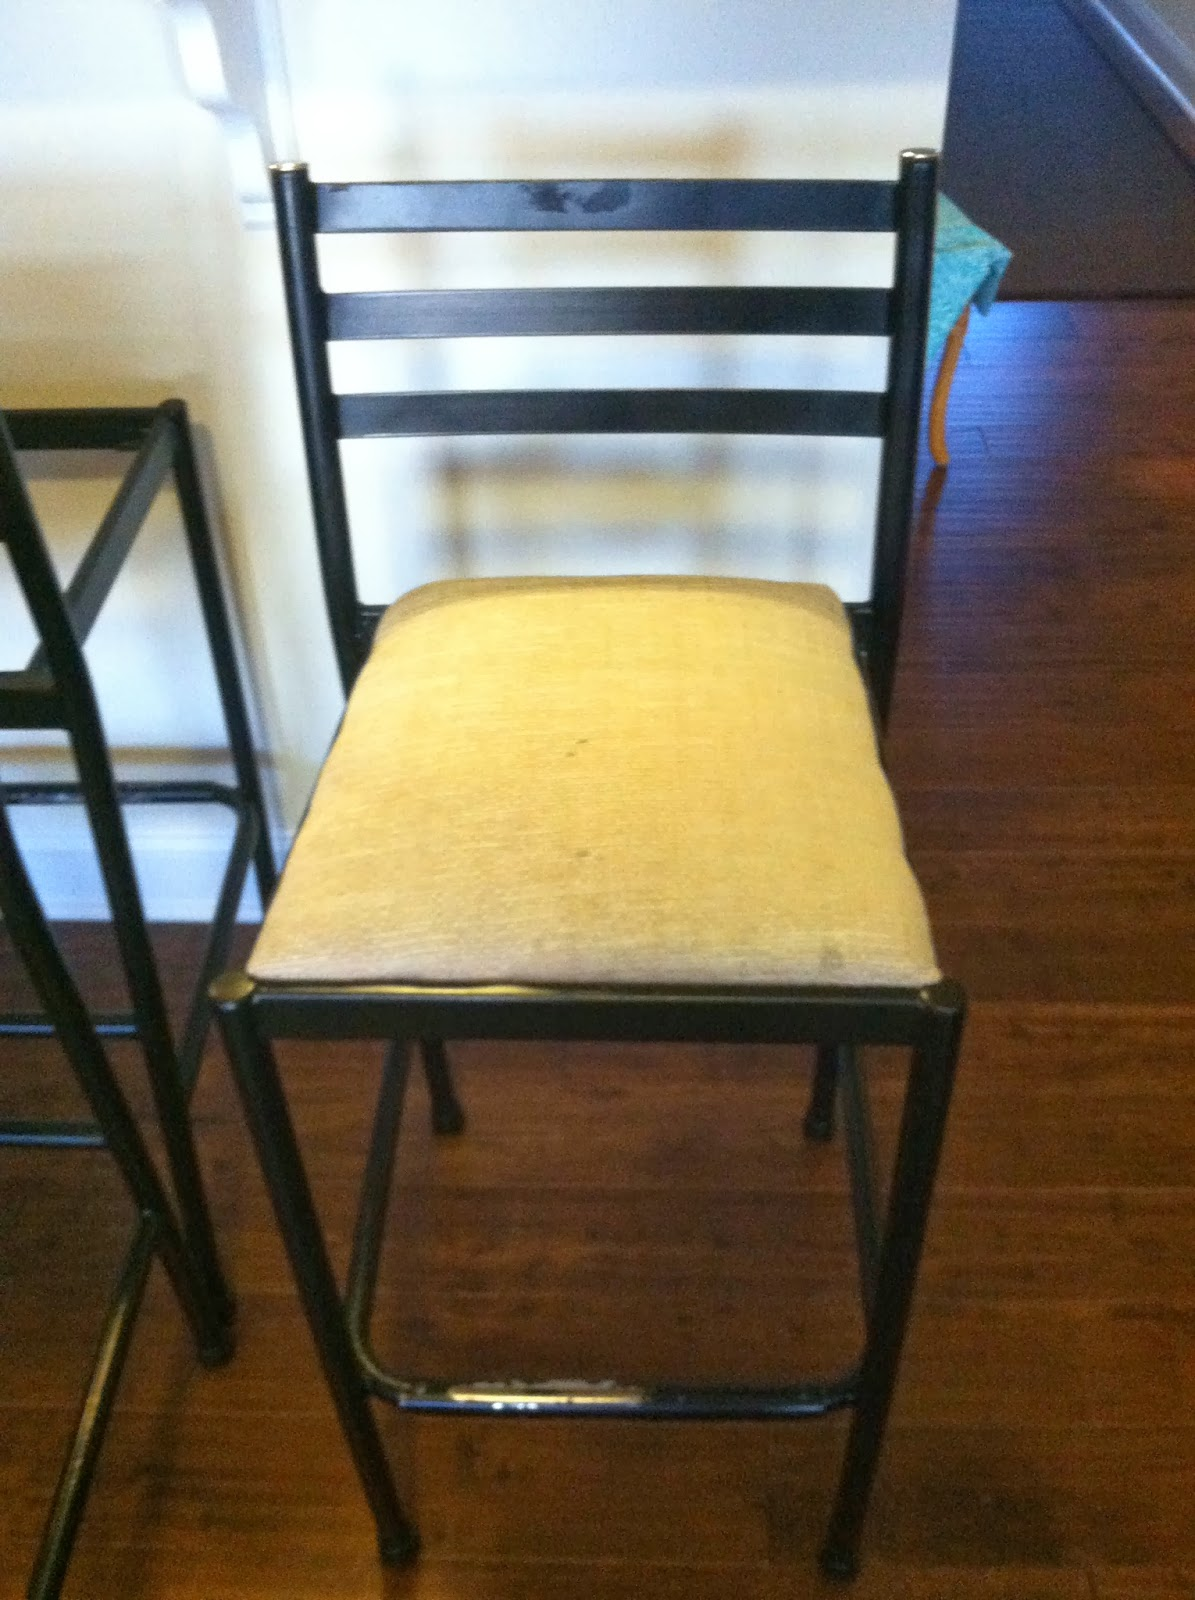 Home Chic Raleigh: Craigslist Barstools